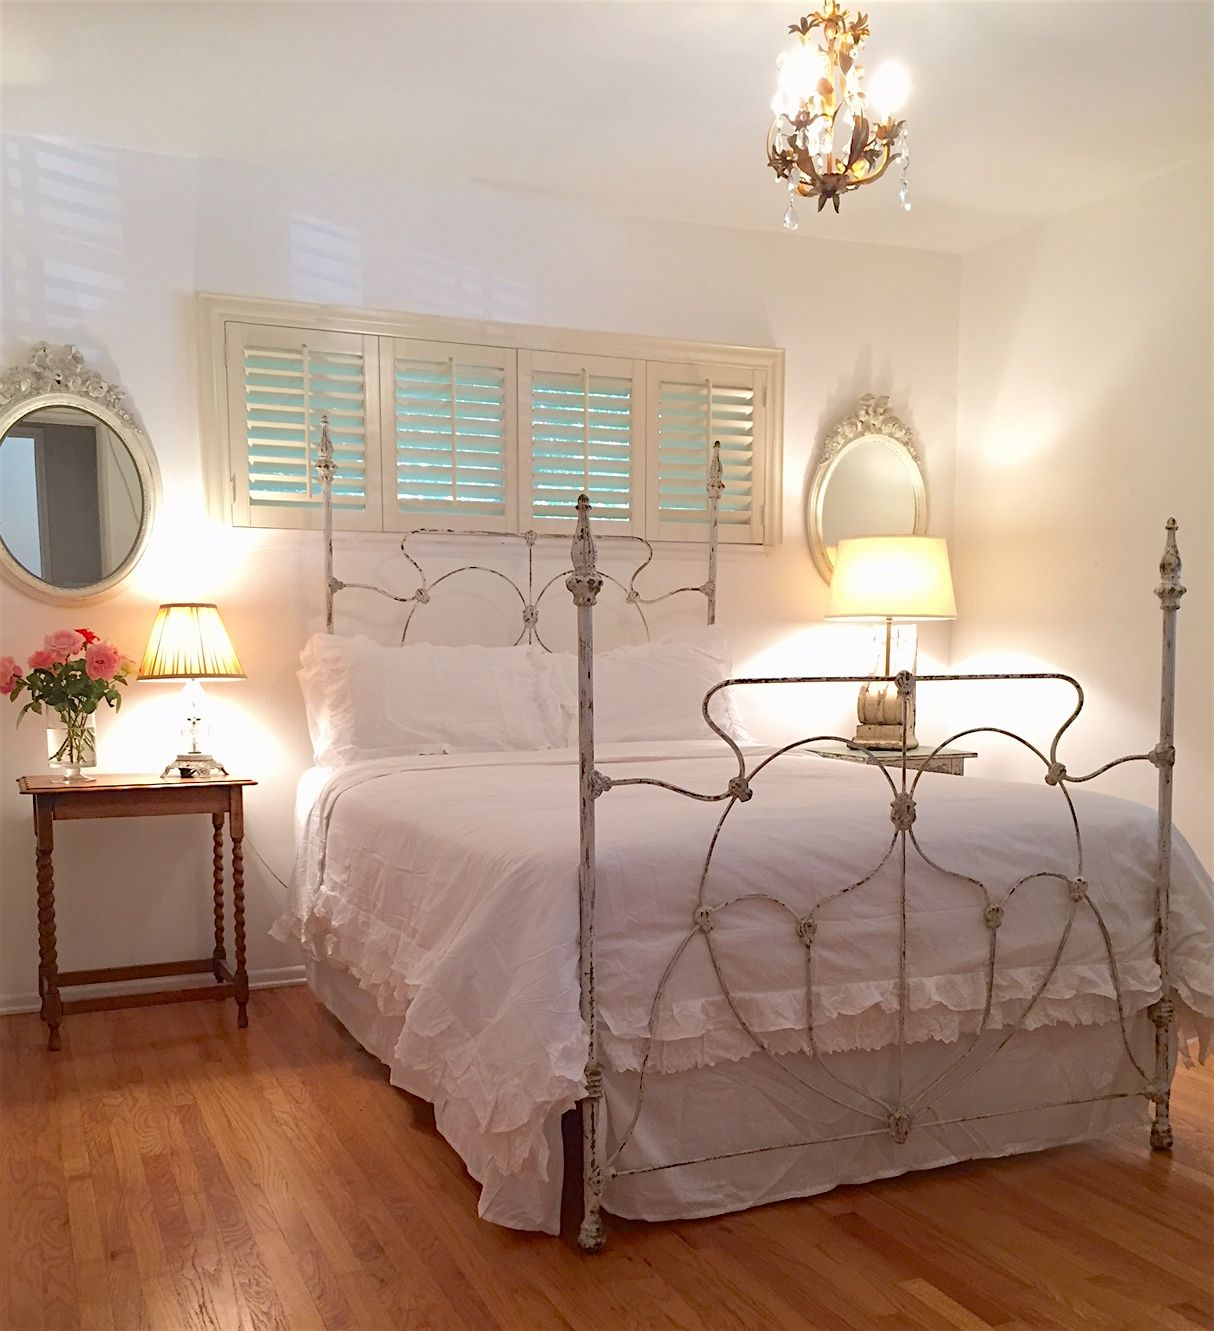 Great Four Poster Antique Iron Bed Circa 1880 With Original White Chipped Paint And Gold Guilding Showing Thro Iron Bed Antique Iron Beds Bedroom Inspirations